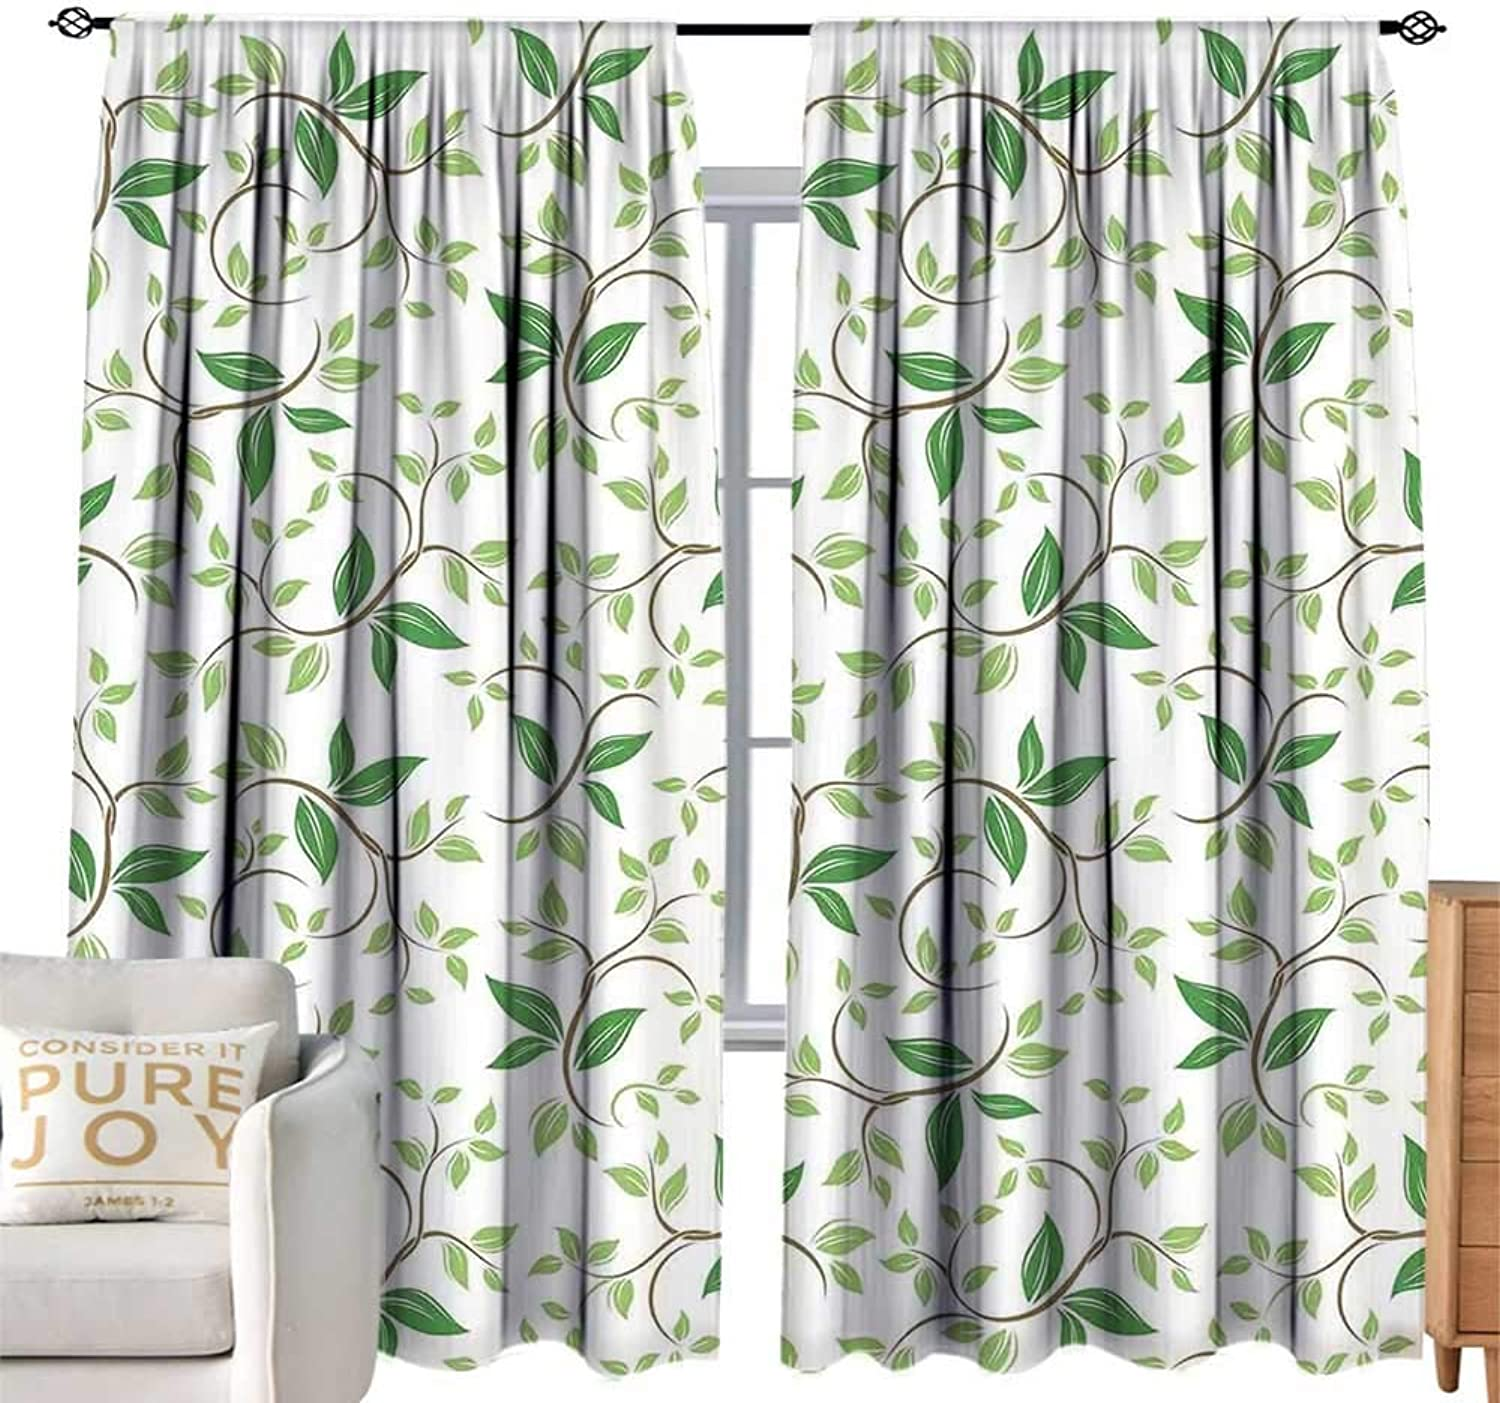 CobeDecor Kids Room Curtains Leaves Ivy Patterns with Tiny Fancy Green Leaves Branches Creme Contemporary Illustration Green Brown Simple Style W108 xL84